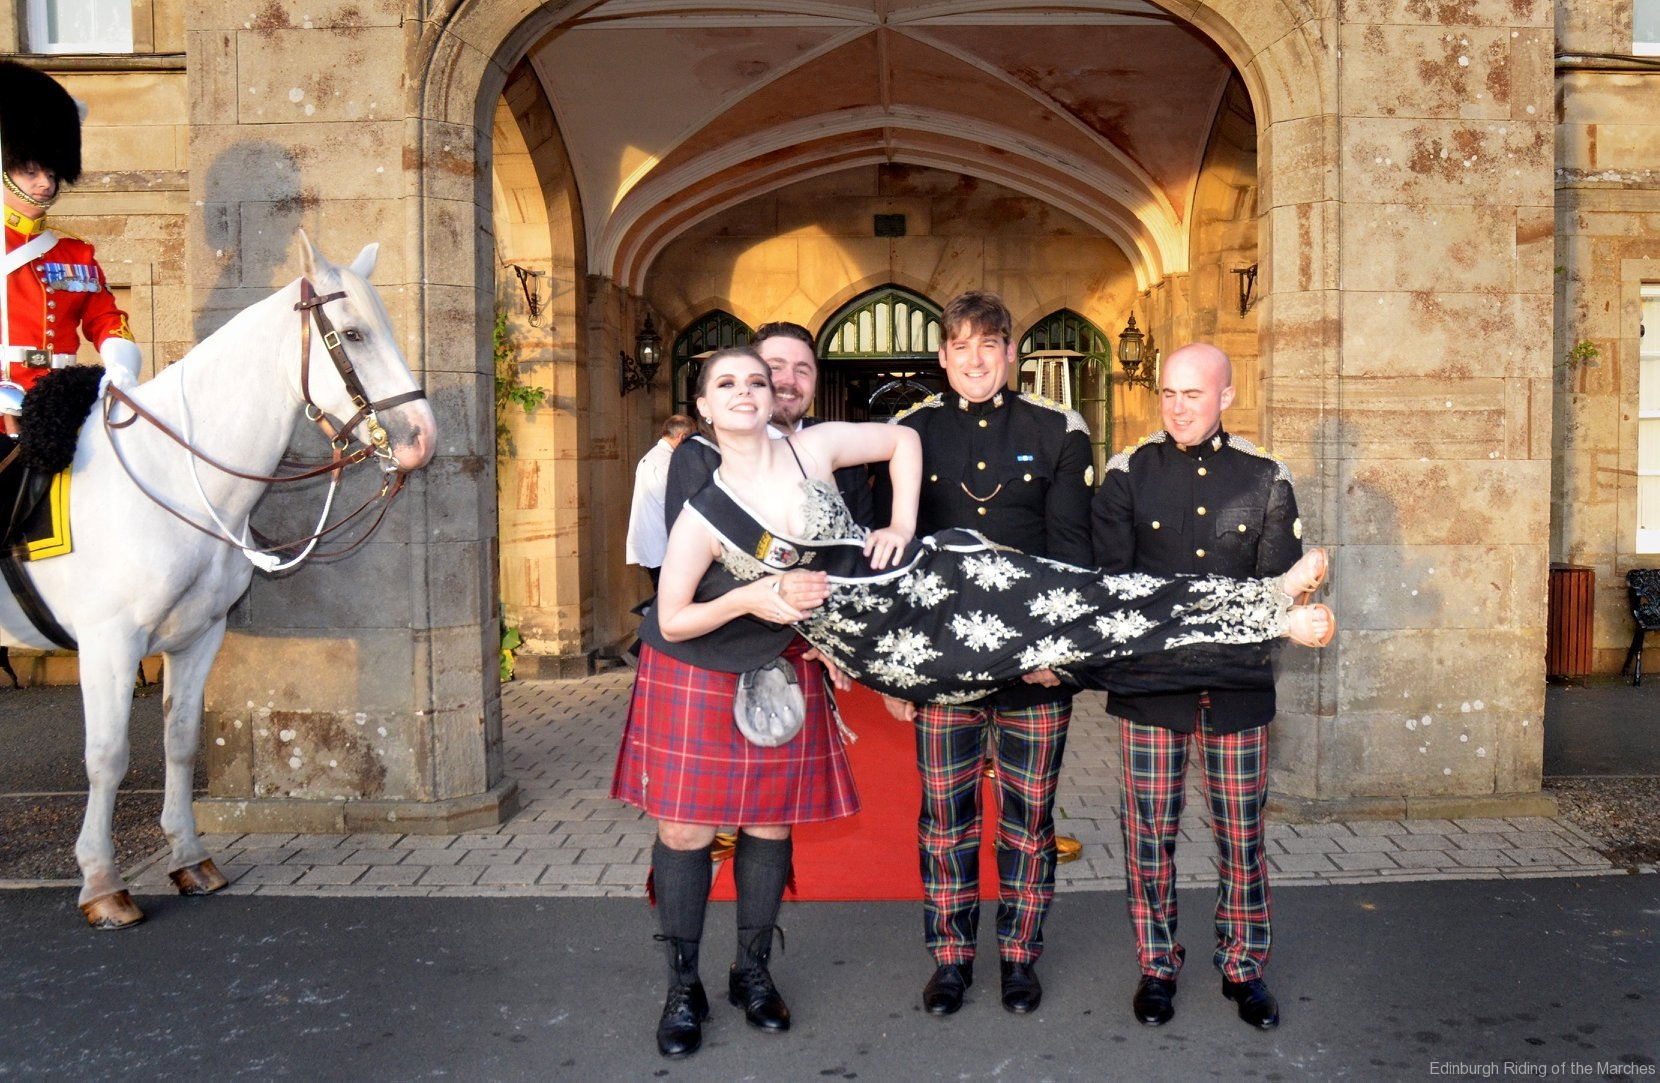 2019 Edinburgh Captain and Lass with officers of Royal Scots Dragoon Guards